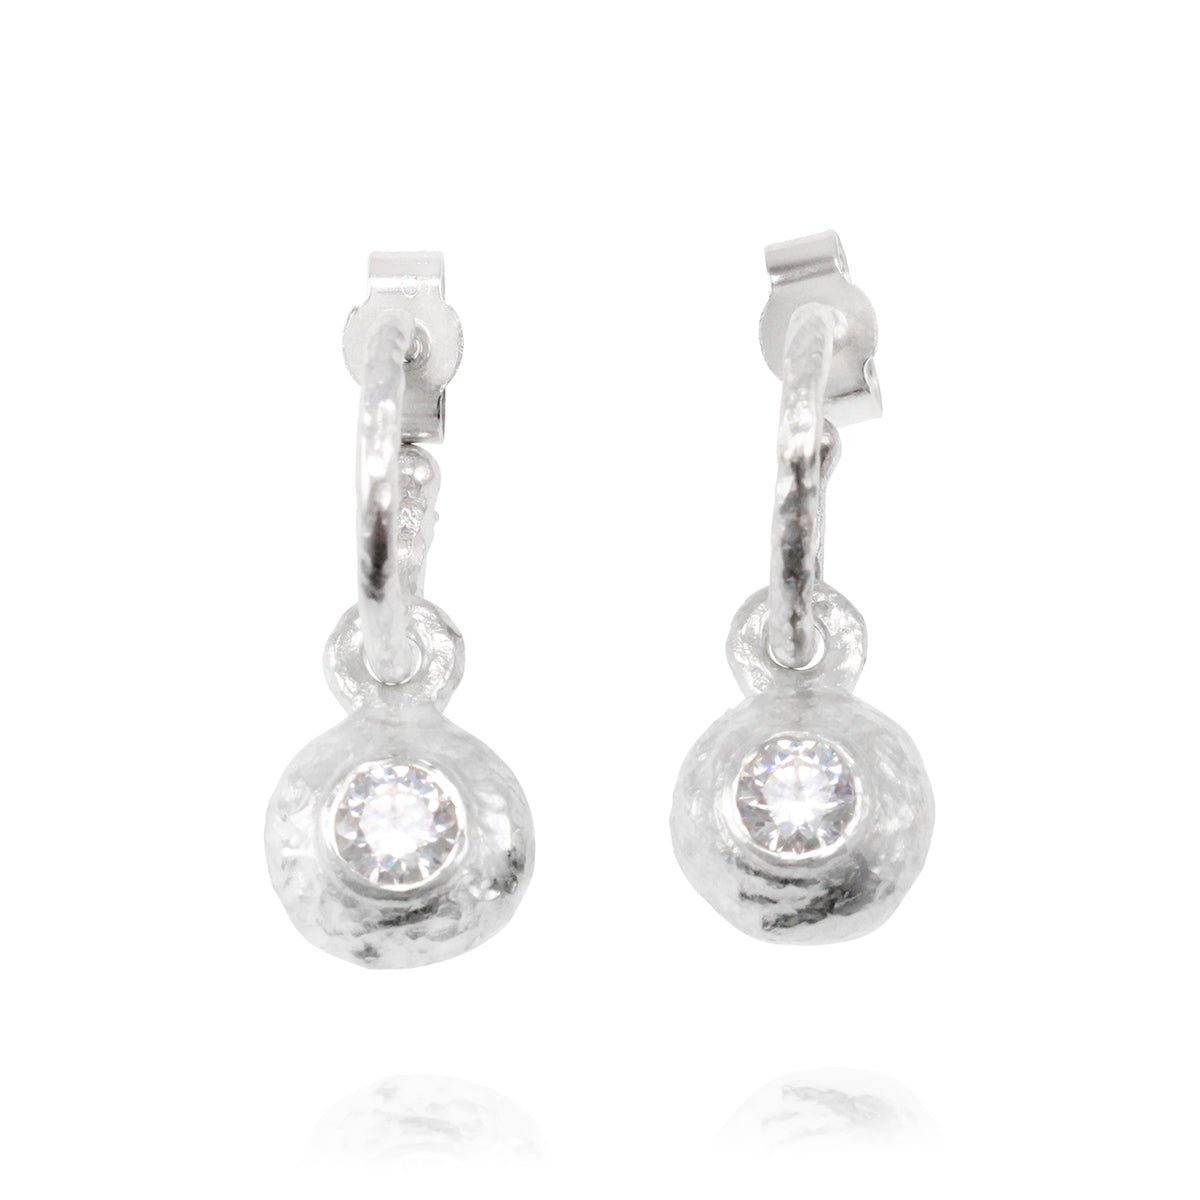 Duco earring in sterling on hoops silver set with 4mm cubic zirconia